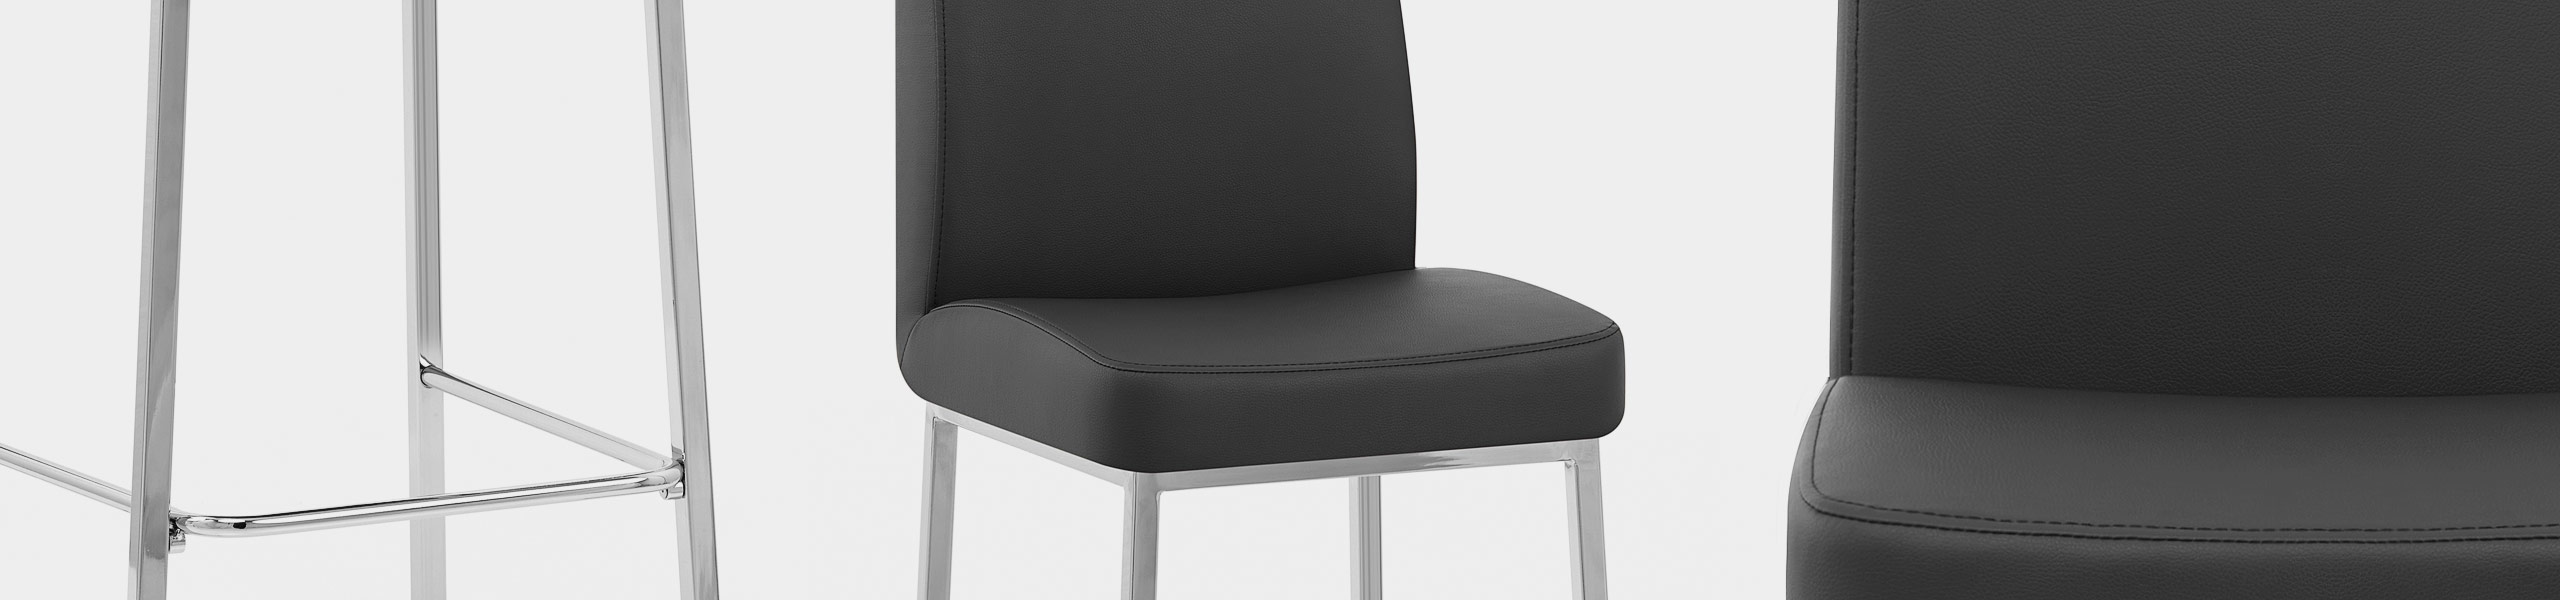 Pacino Stool Black Video Banner